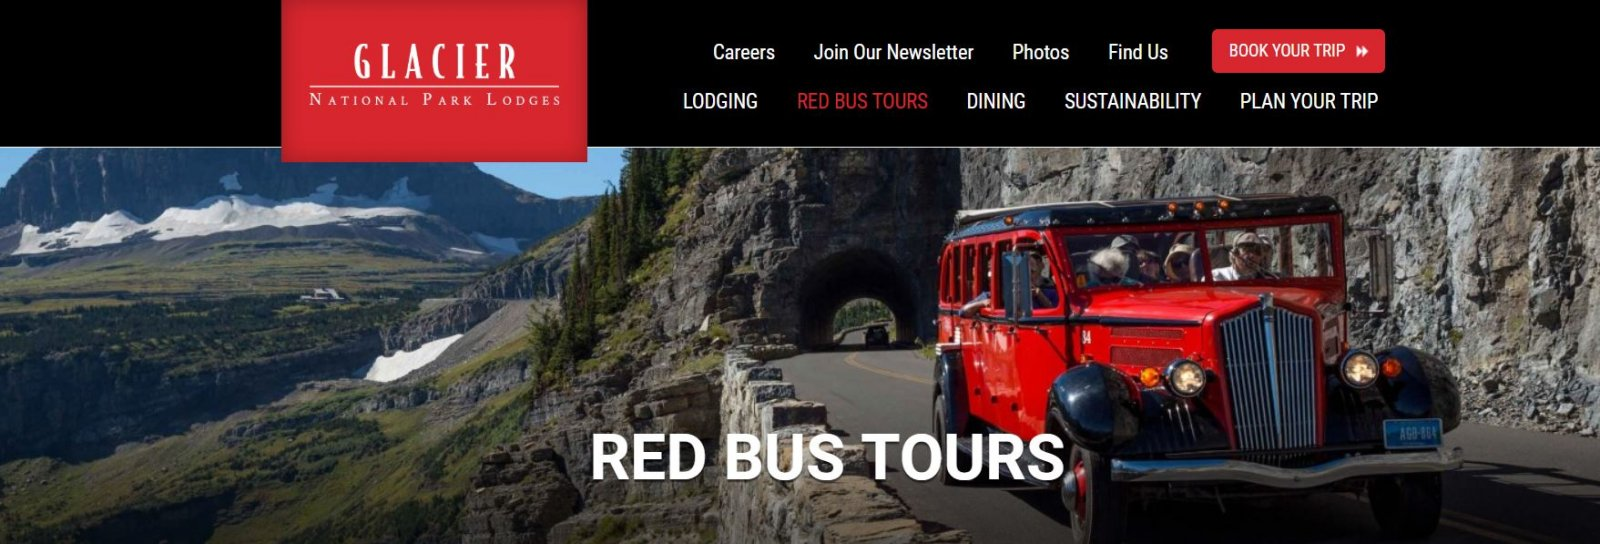 Click image for larger version  Name:Red Bus Tour.jpg Views:46 Size:159.3 KB ID:239041